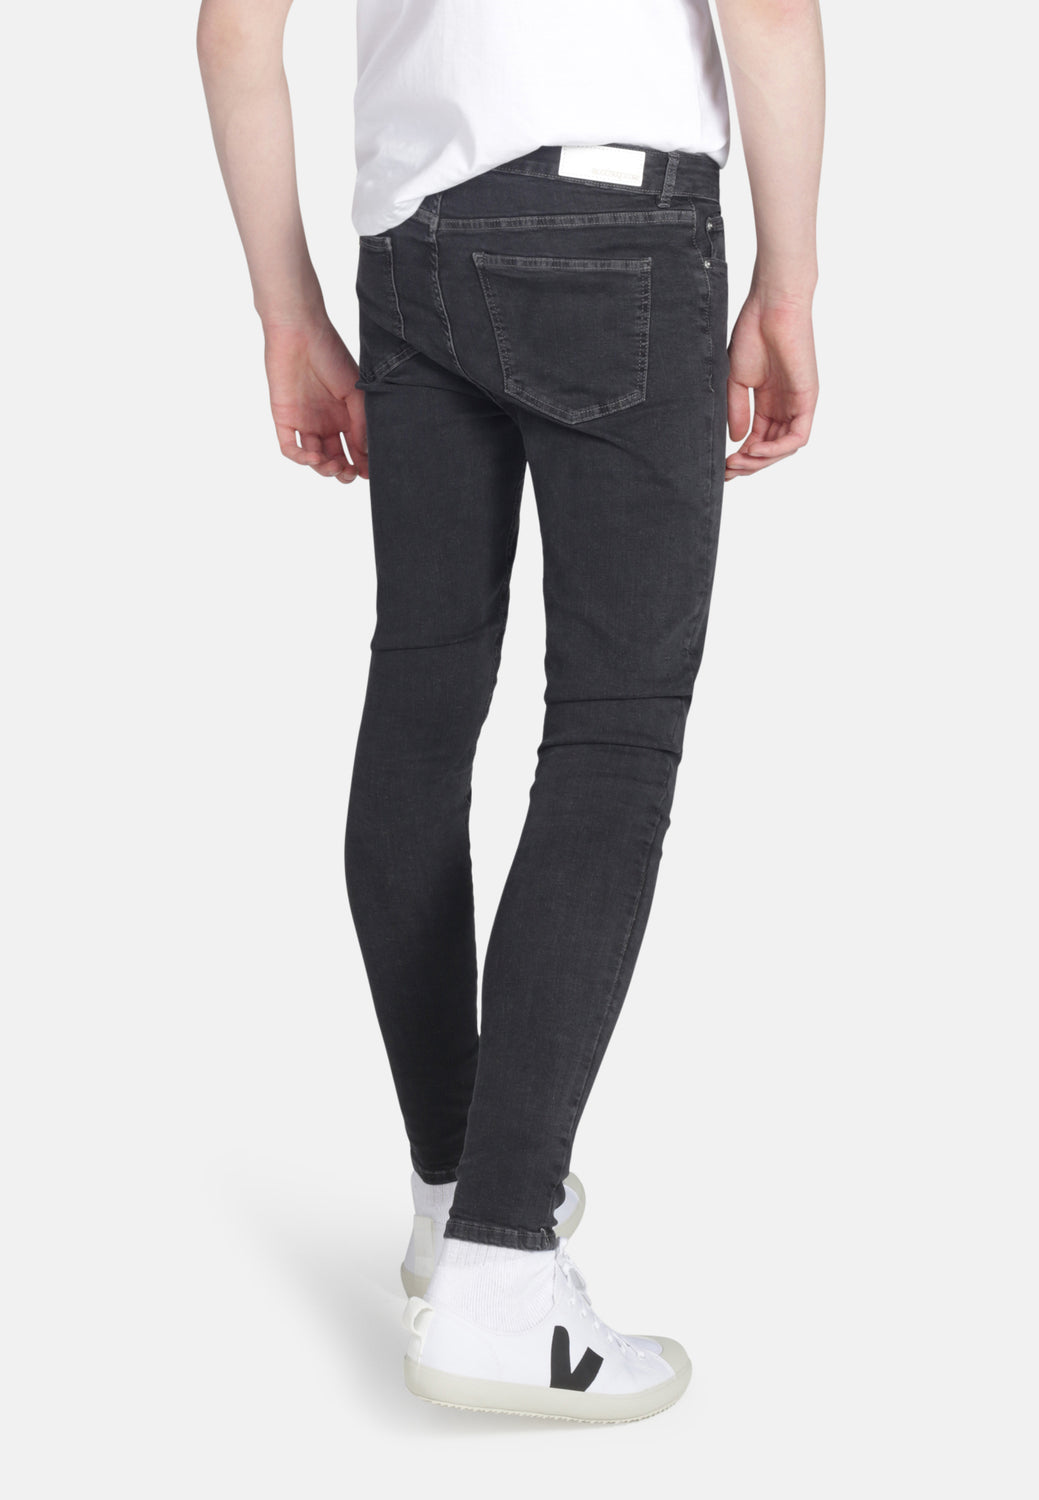 Dark Grey Eco Wash Cody Super Skinny Organic Jeans - Monkee Genes Organic Jeans Denim - Men's Cody Monkee Genes Official  Monkee Genes Official